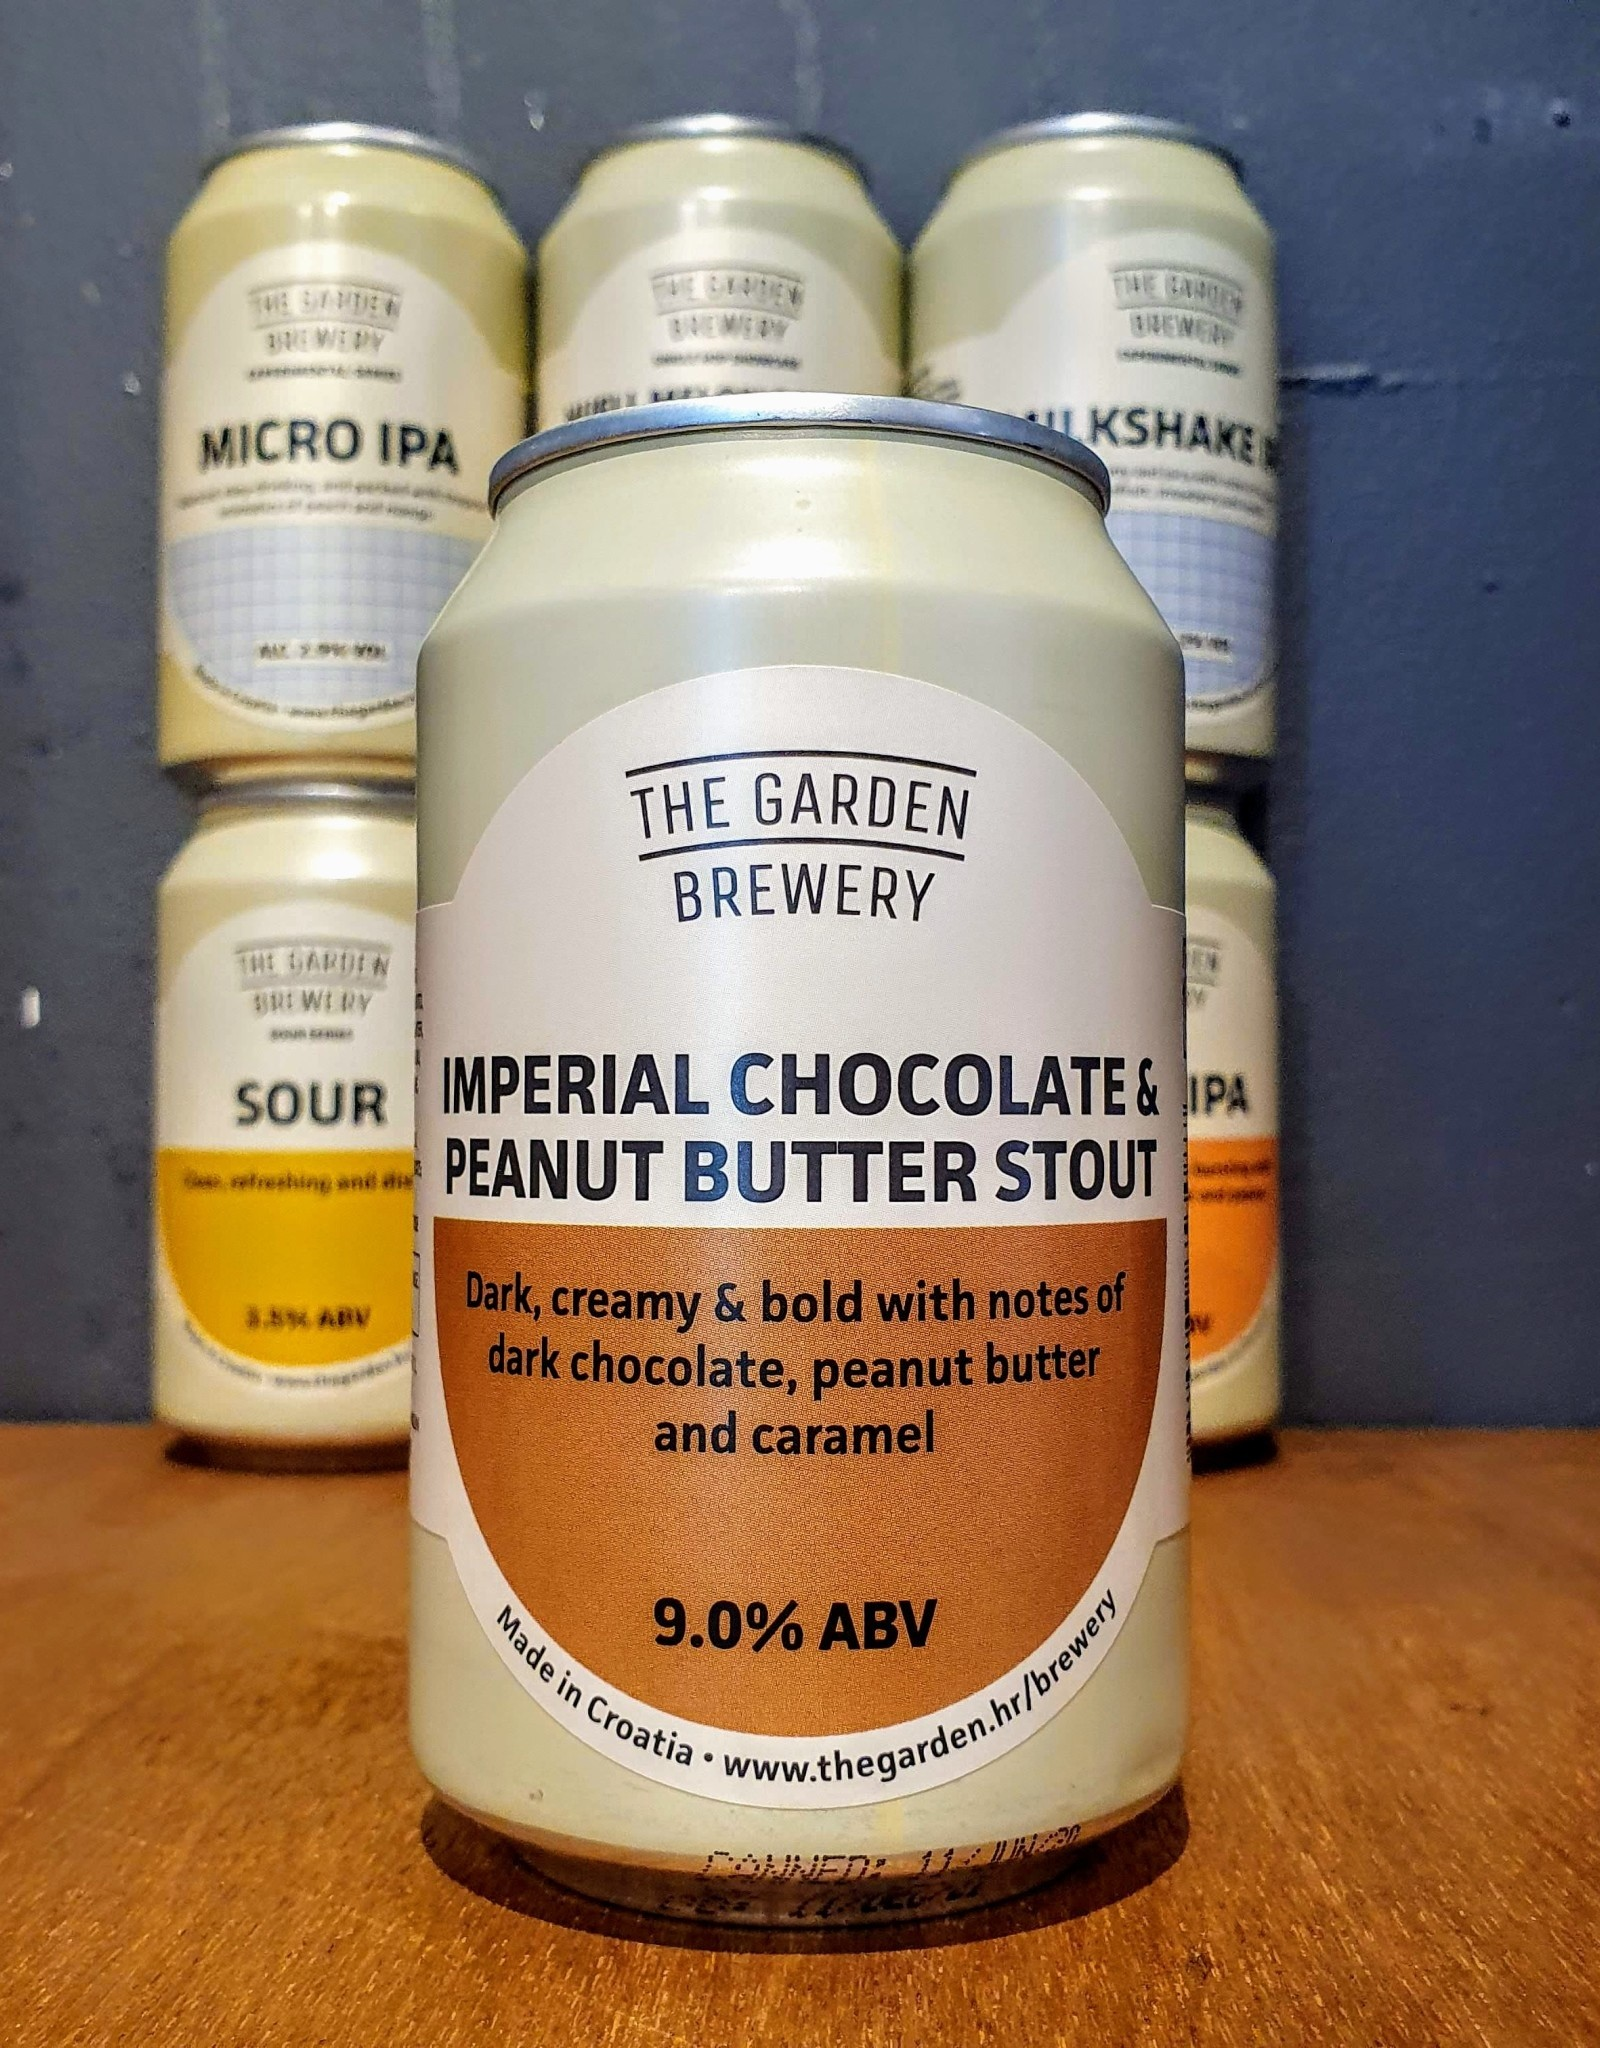 The Garden Brewery The Garden: Imperial Chocolate & Peanut Butter Stout